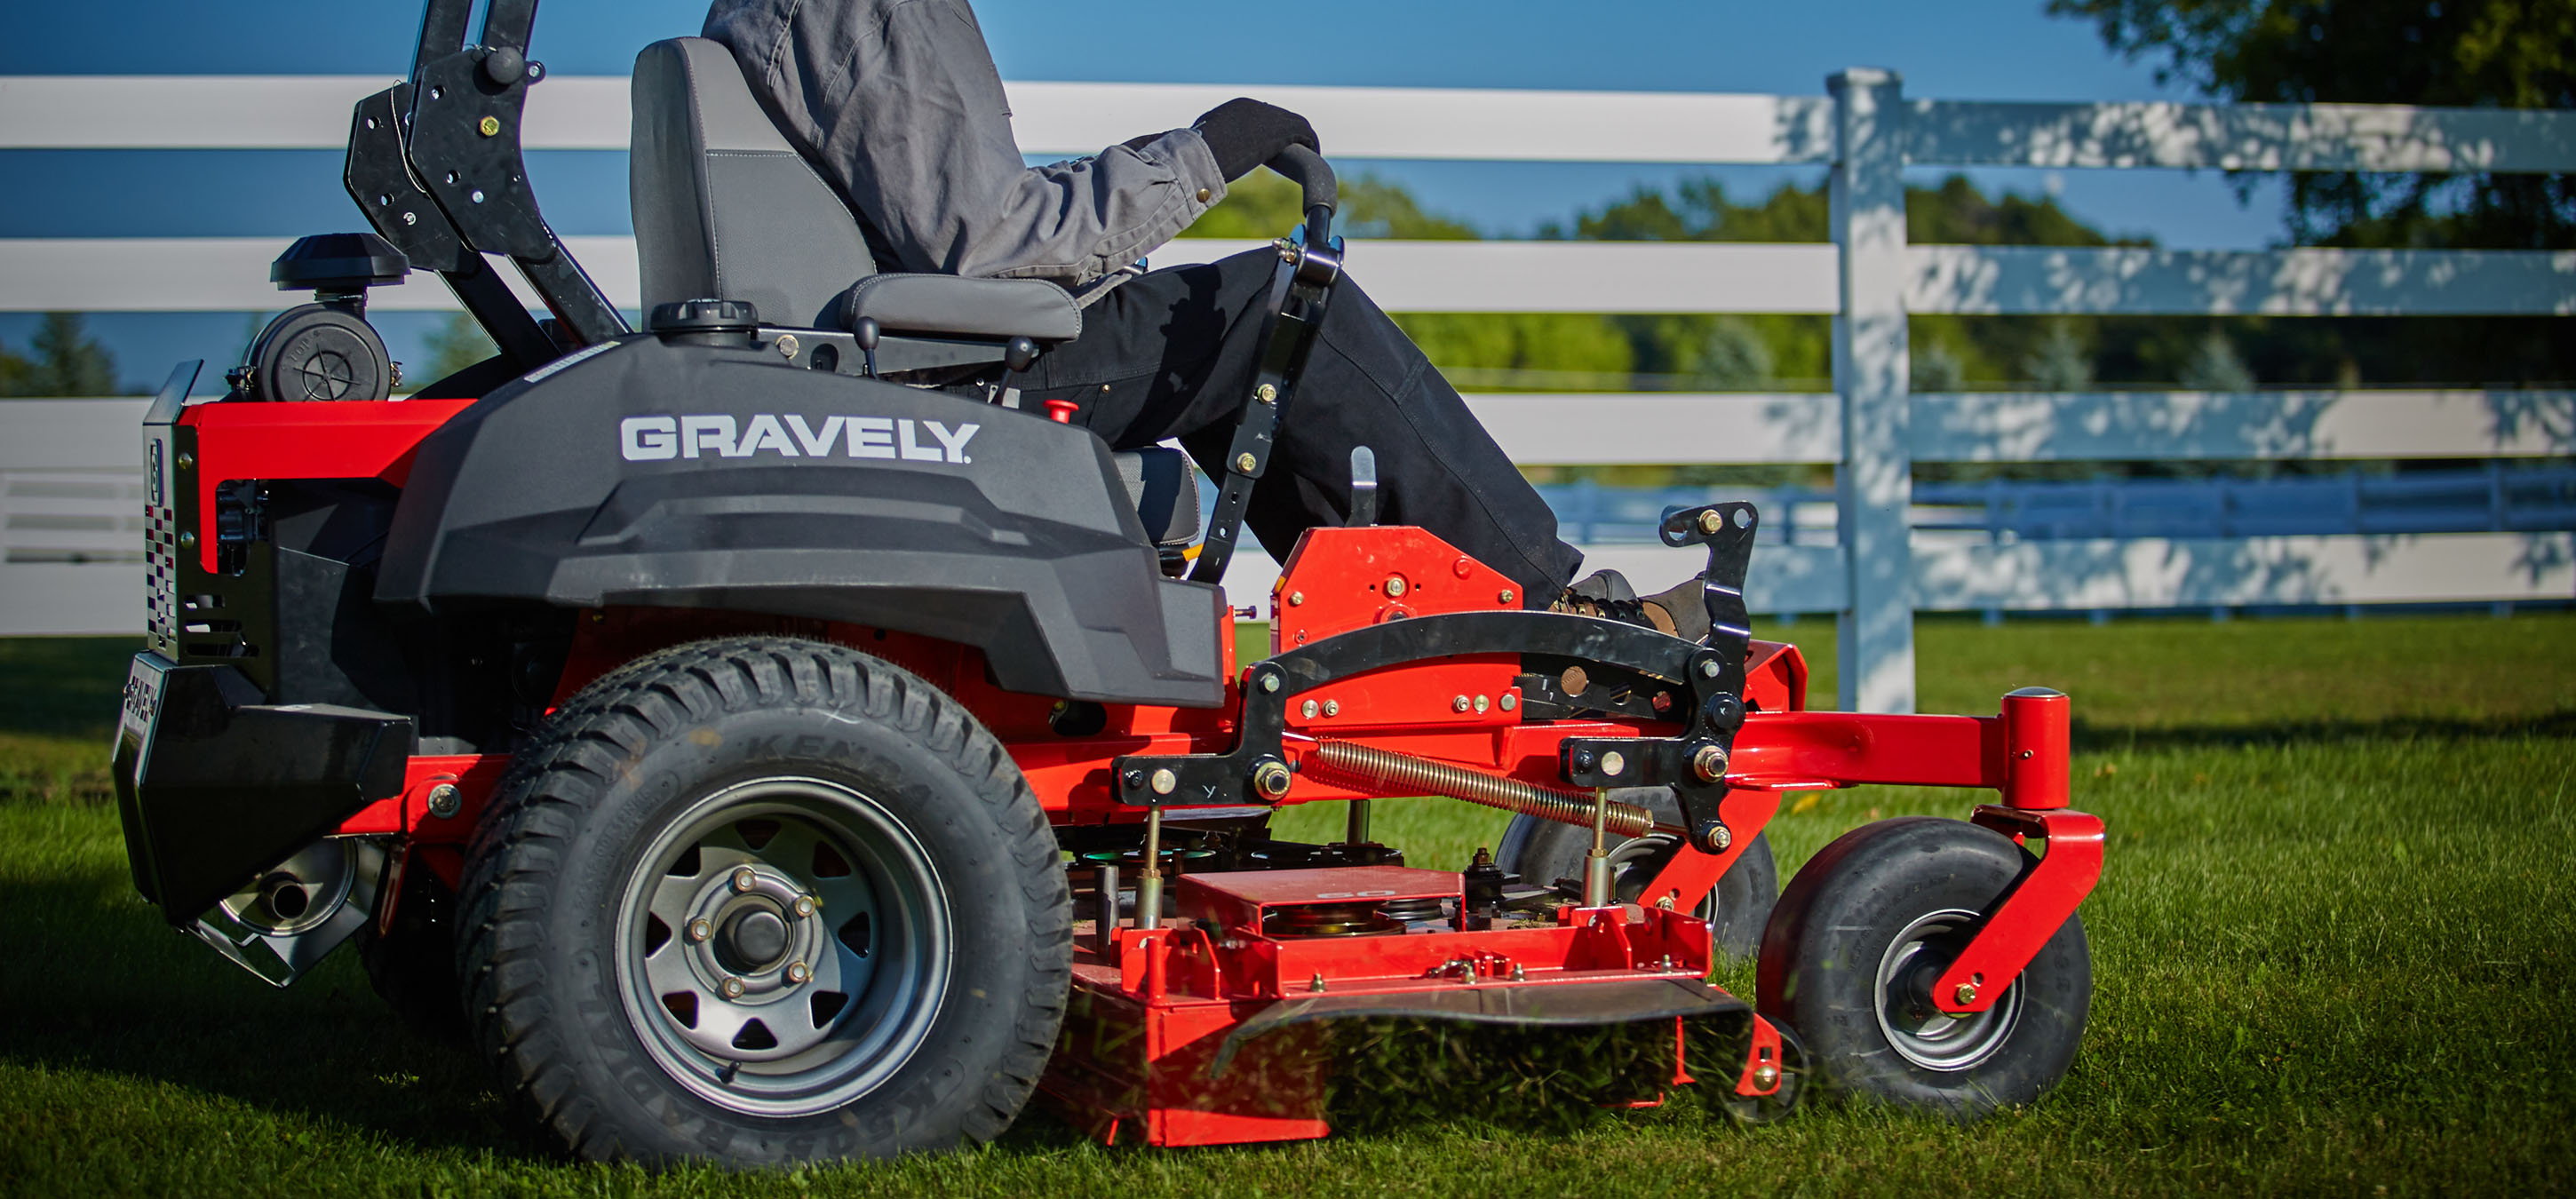 Gravely zero-turn lawn mower in use